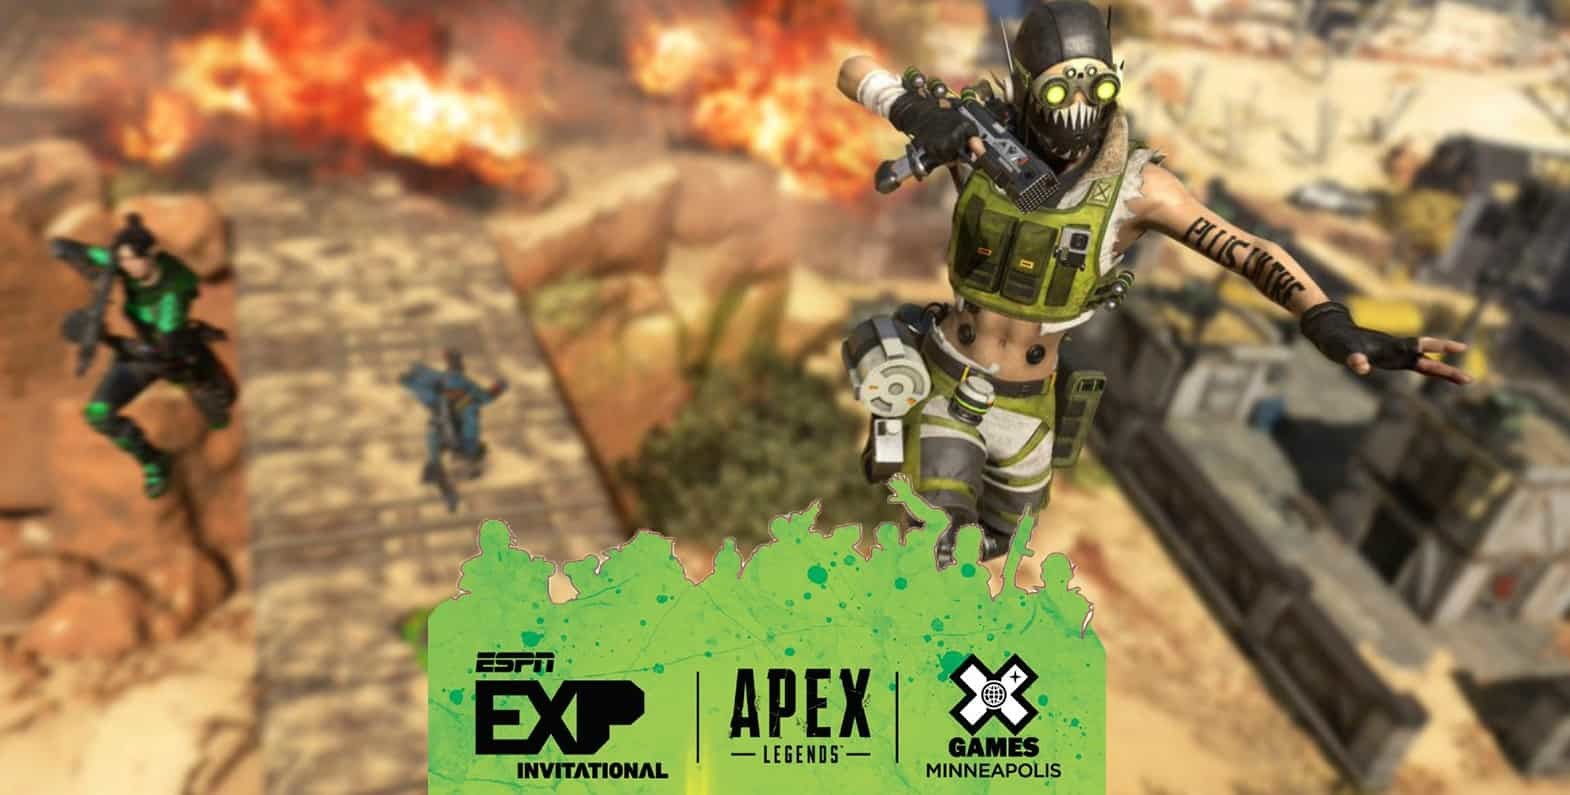 Apex Legends EXP Invitational tournament concludes with an NA winner